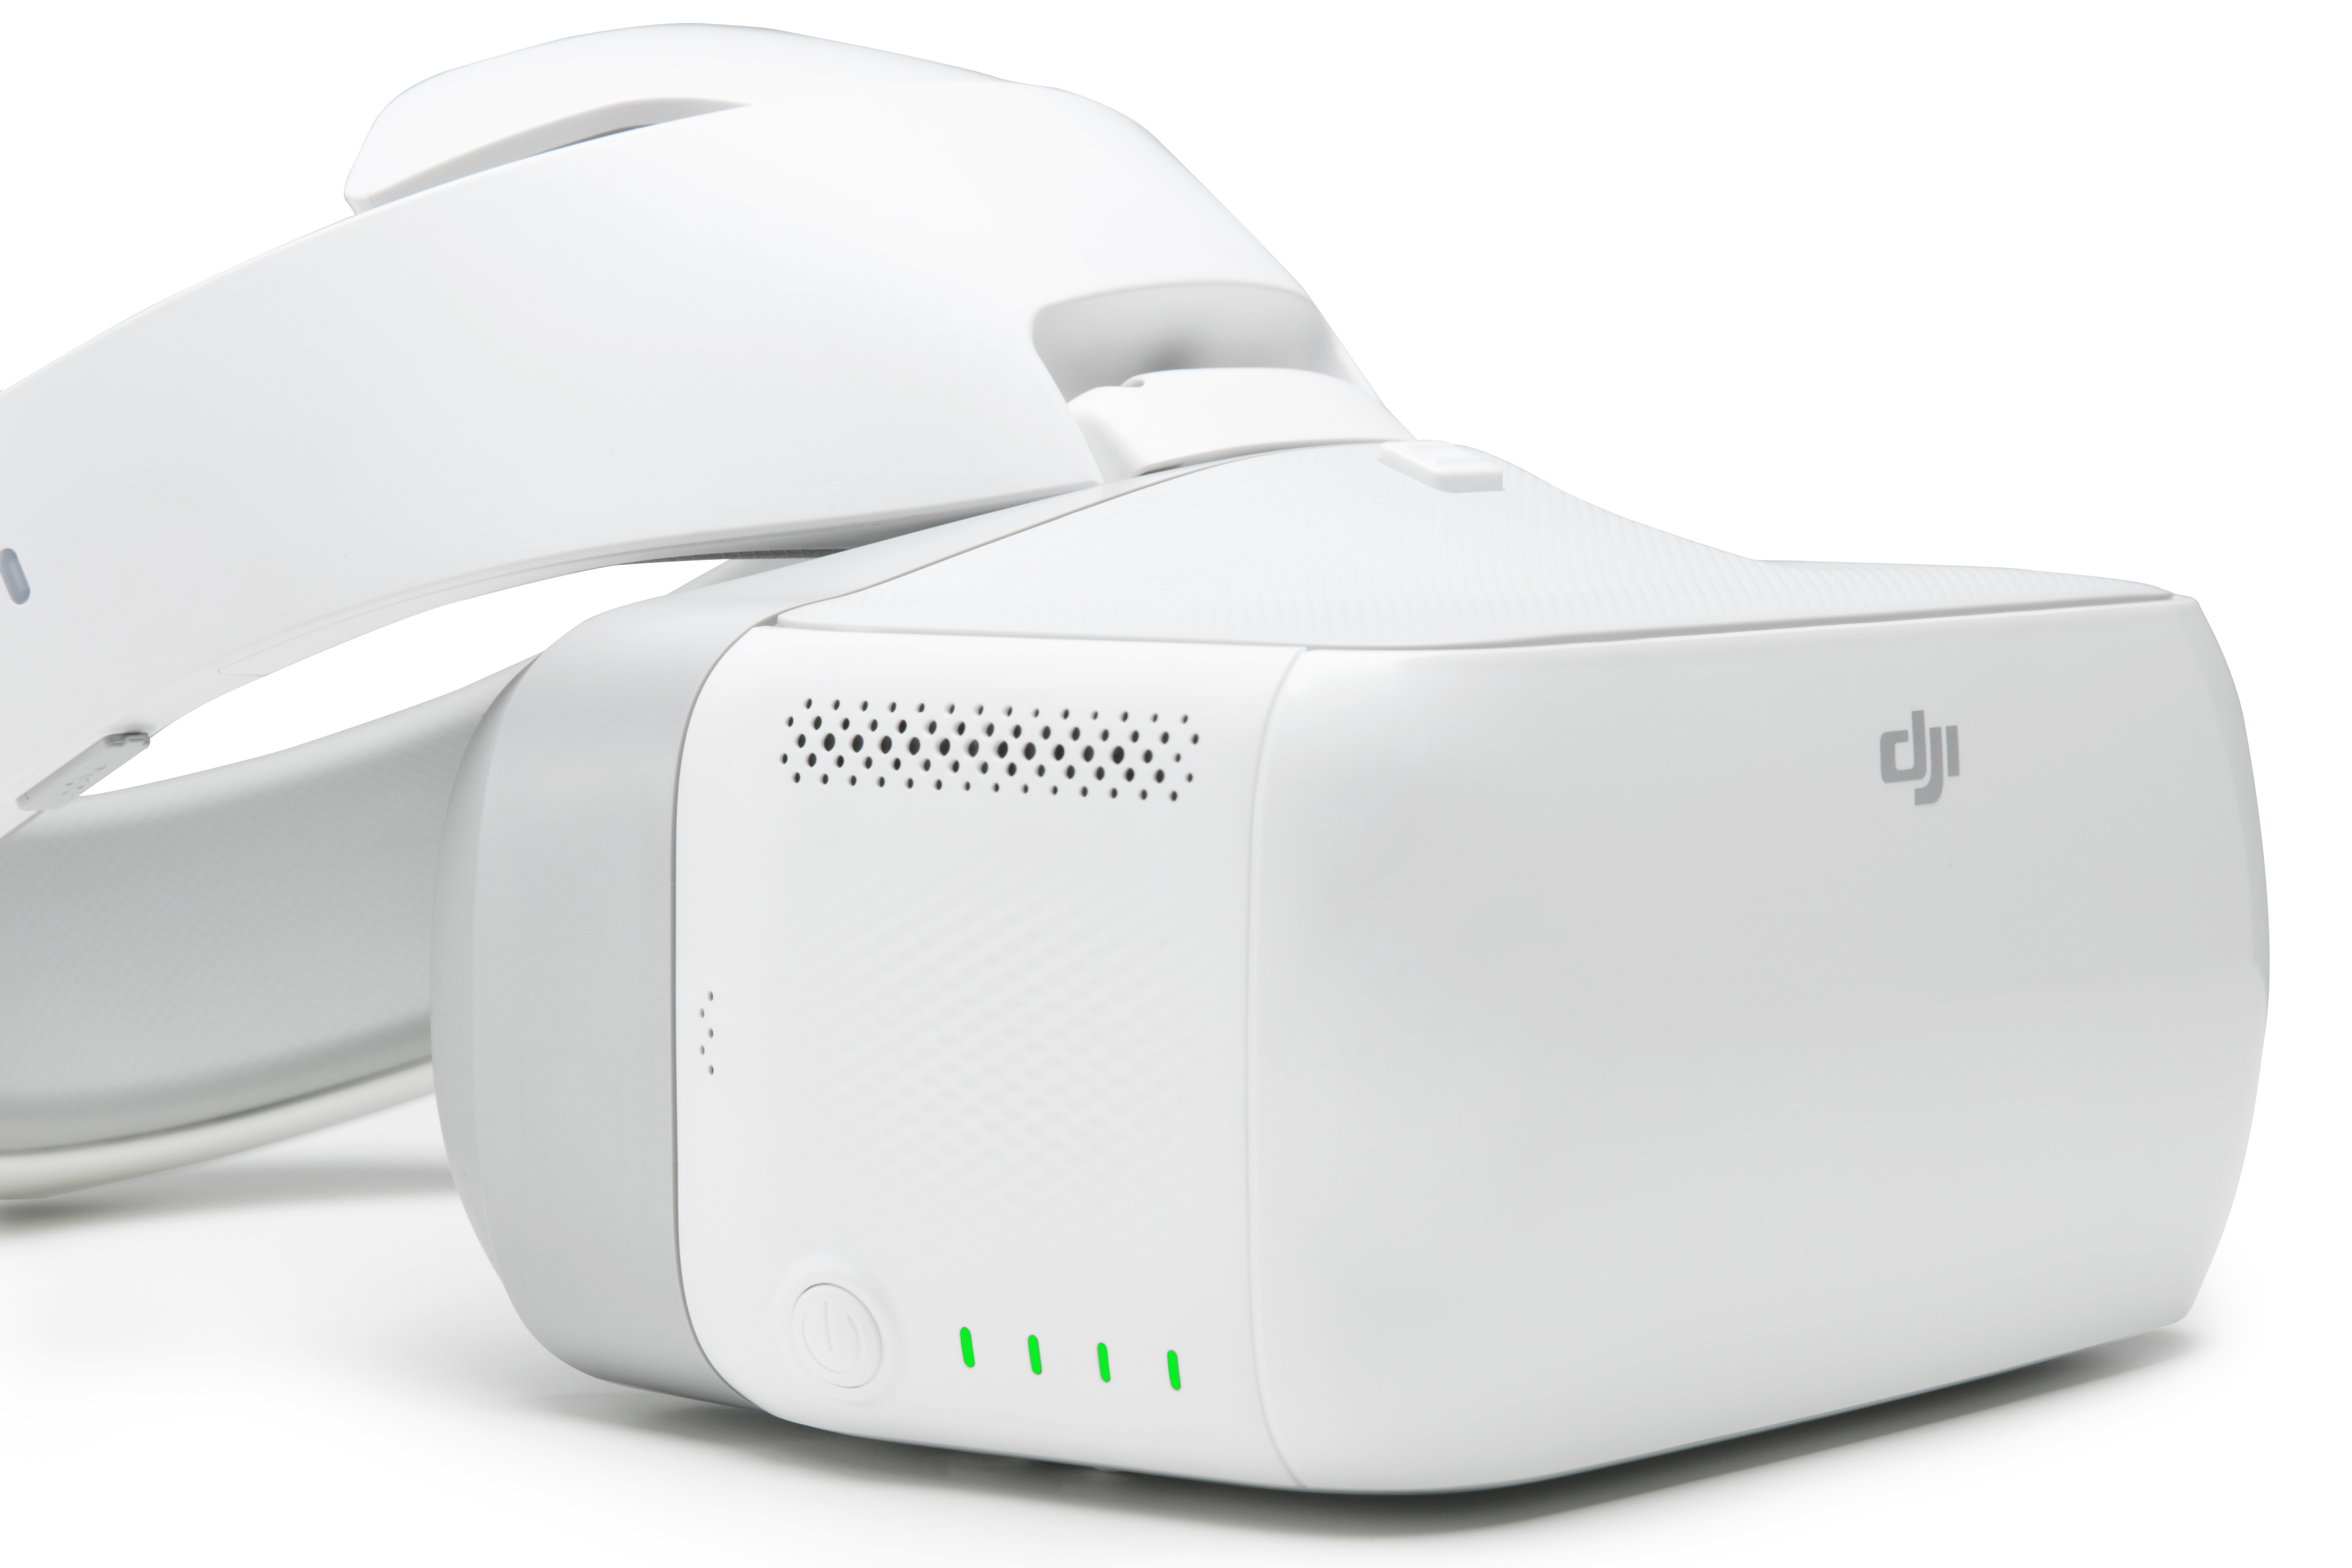 The new DJI Goggle allows users to stream Drone footage in real time.